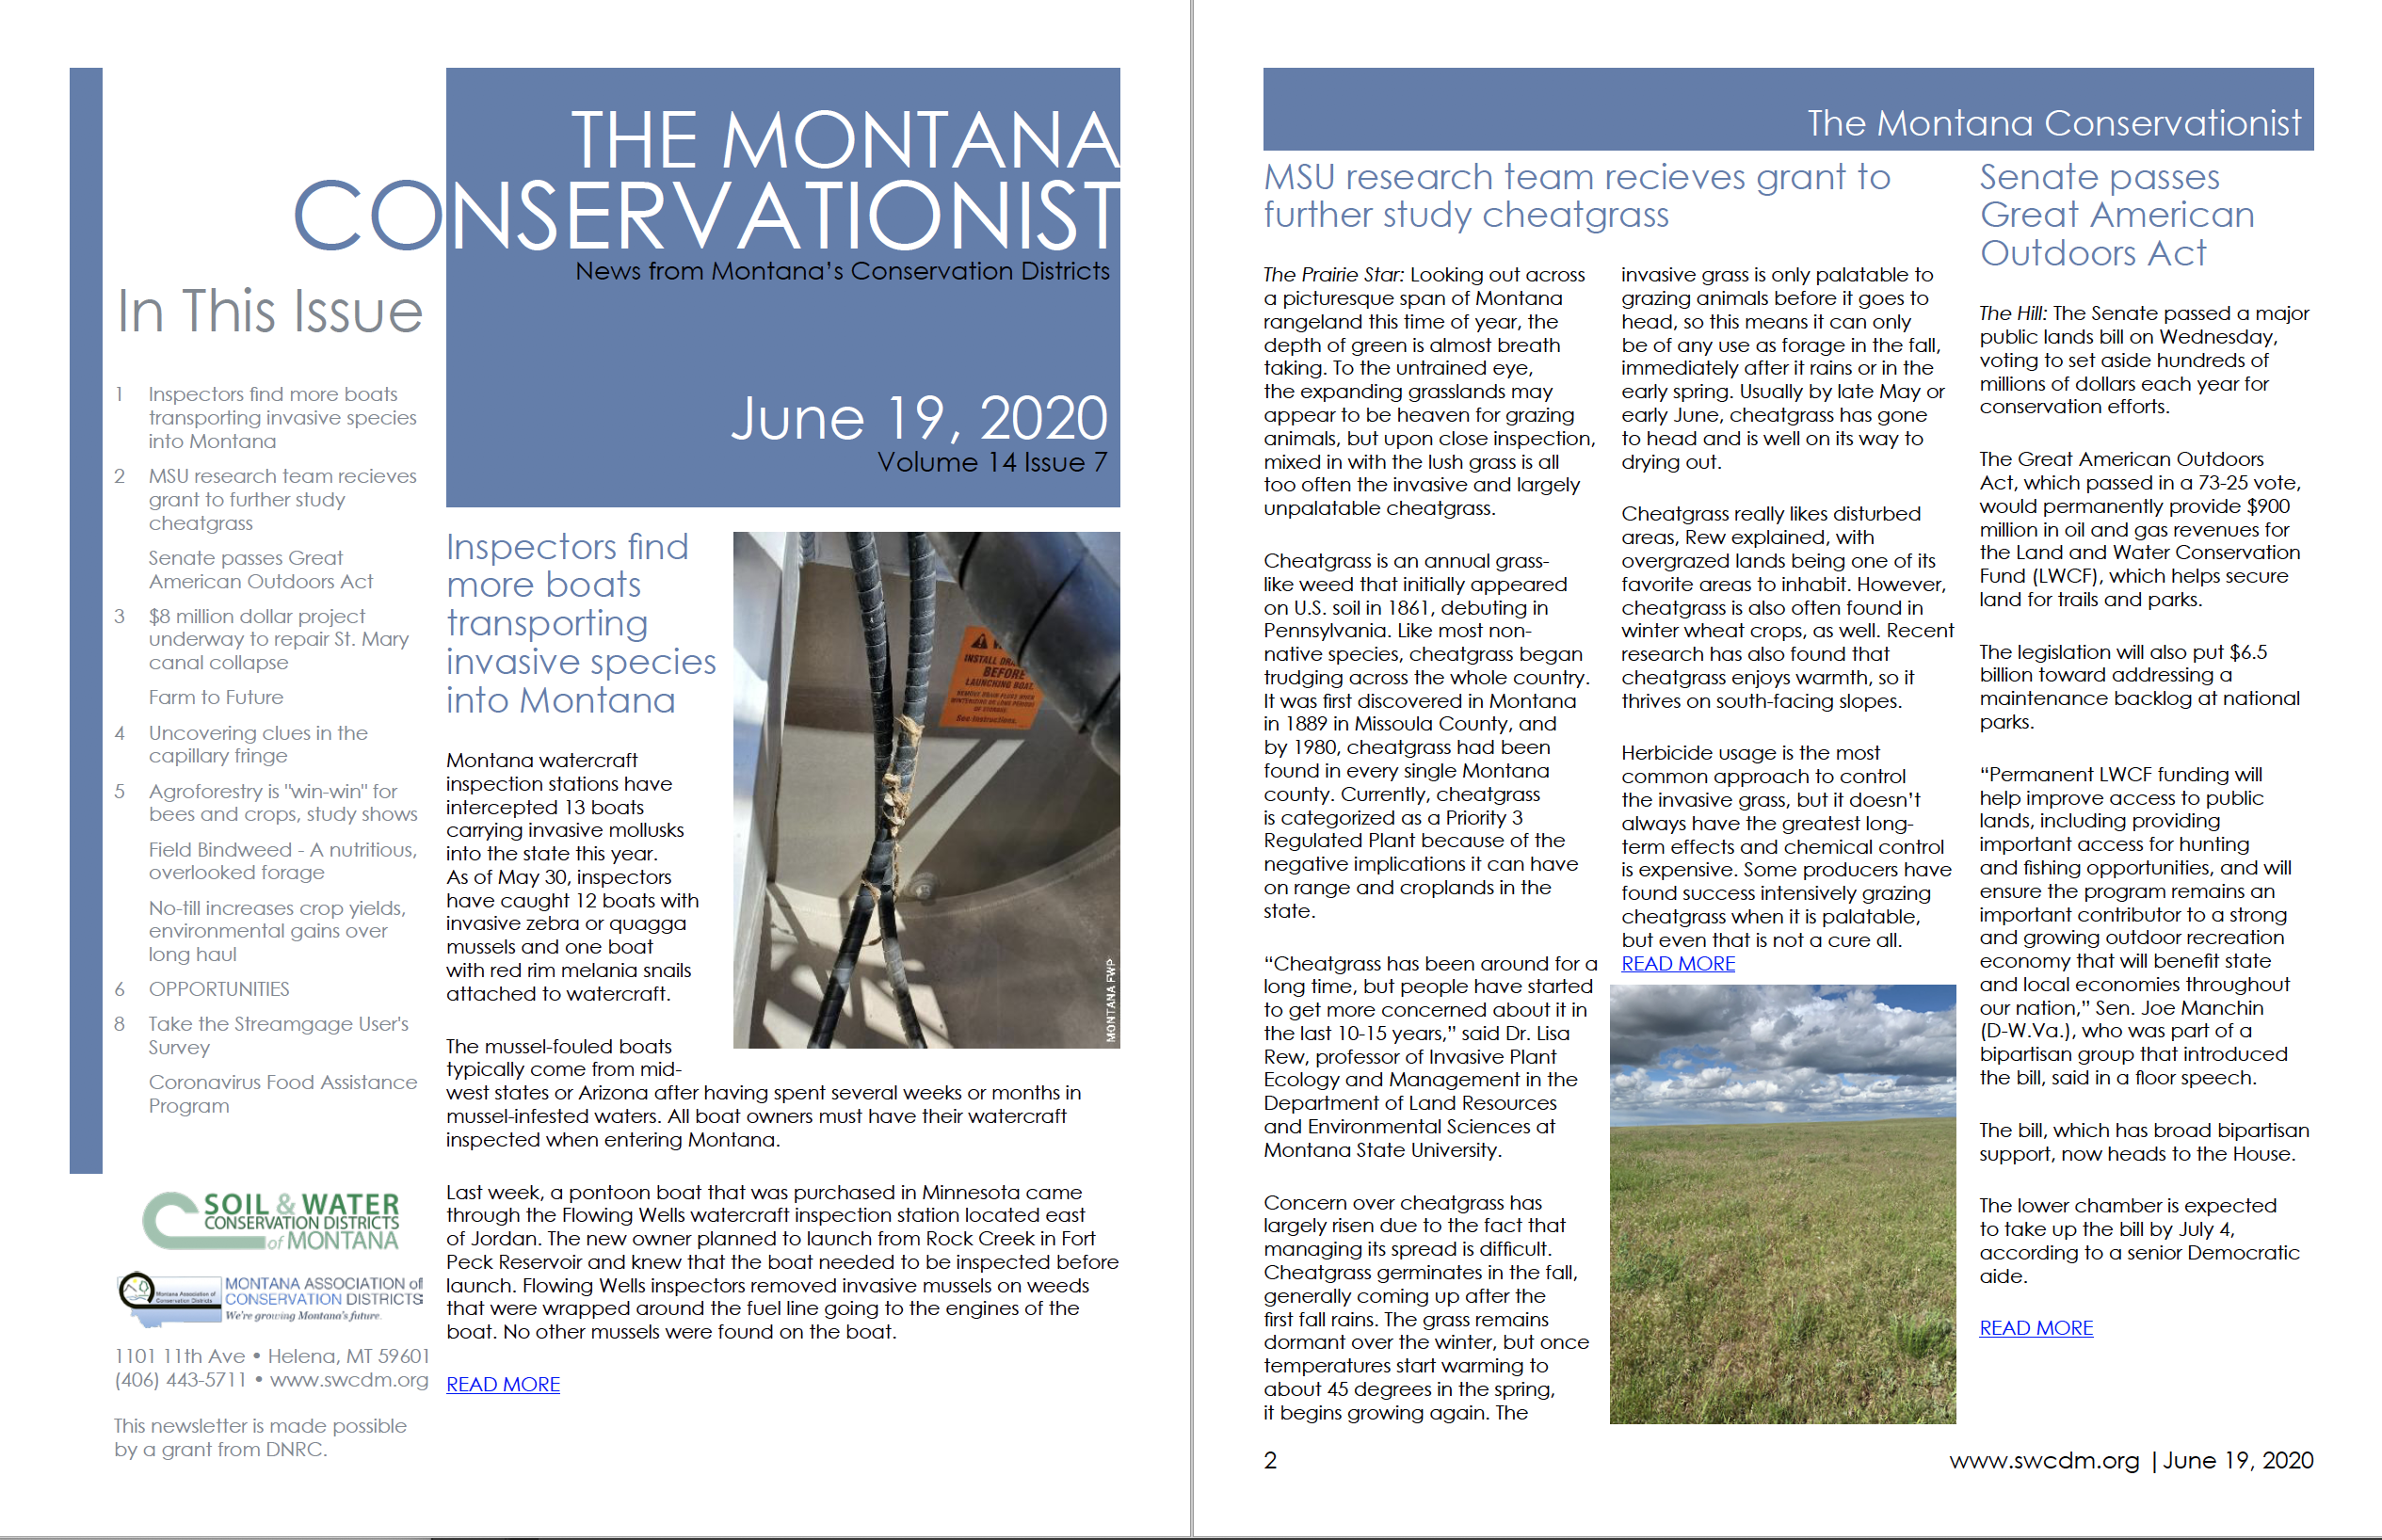 The Montana Conservationist, V14 I7